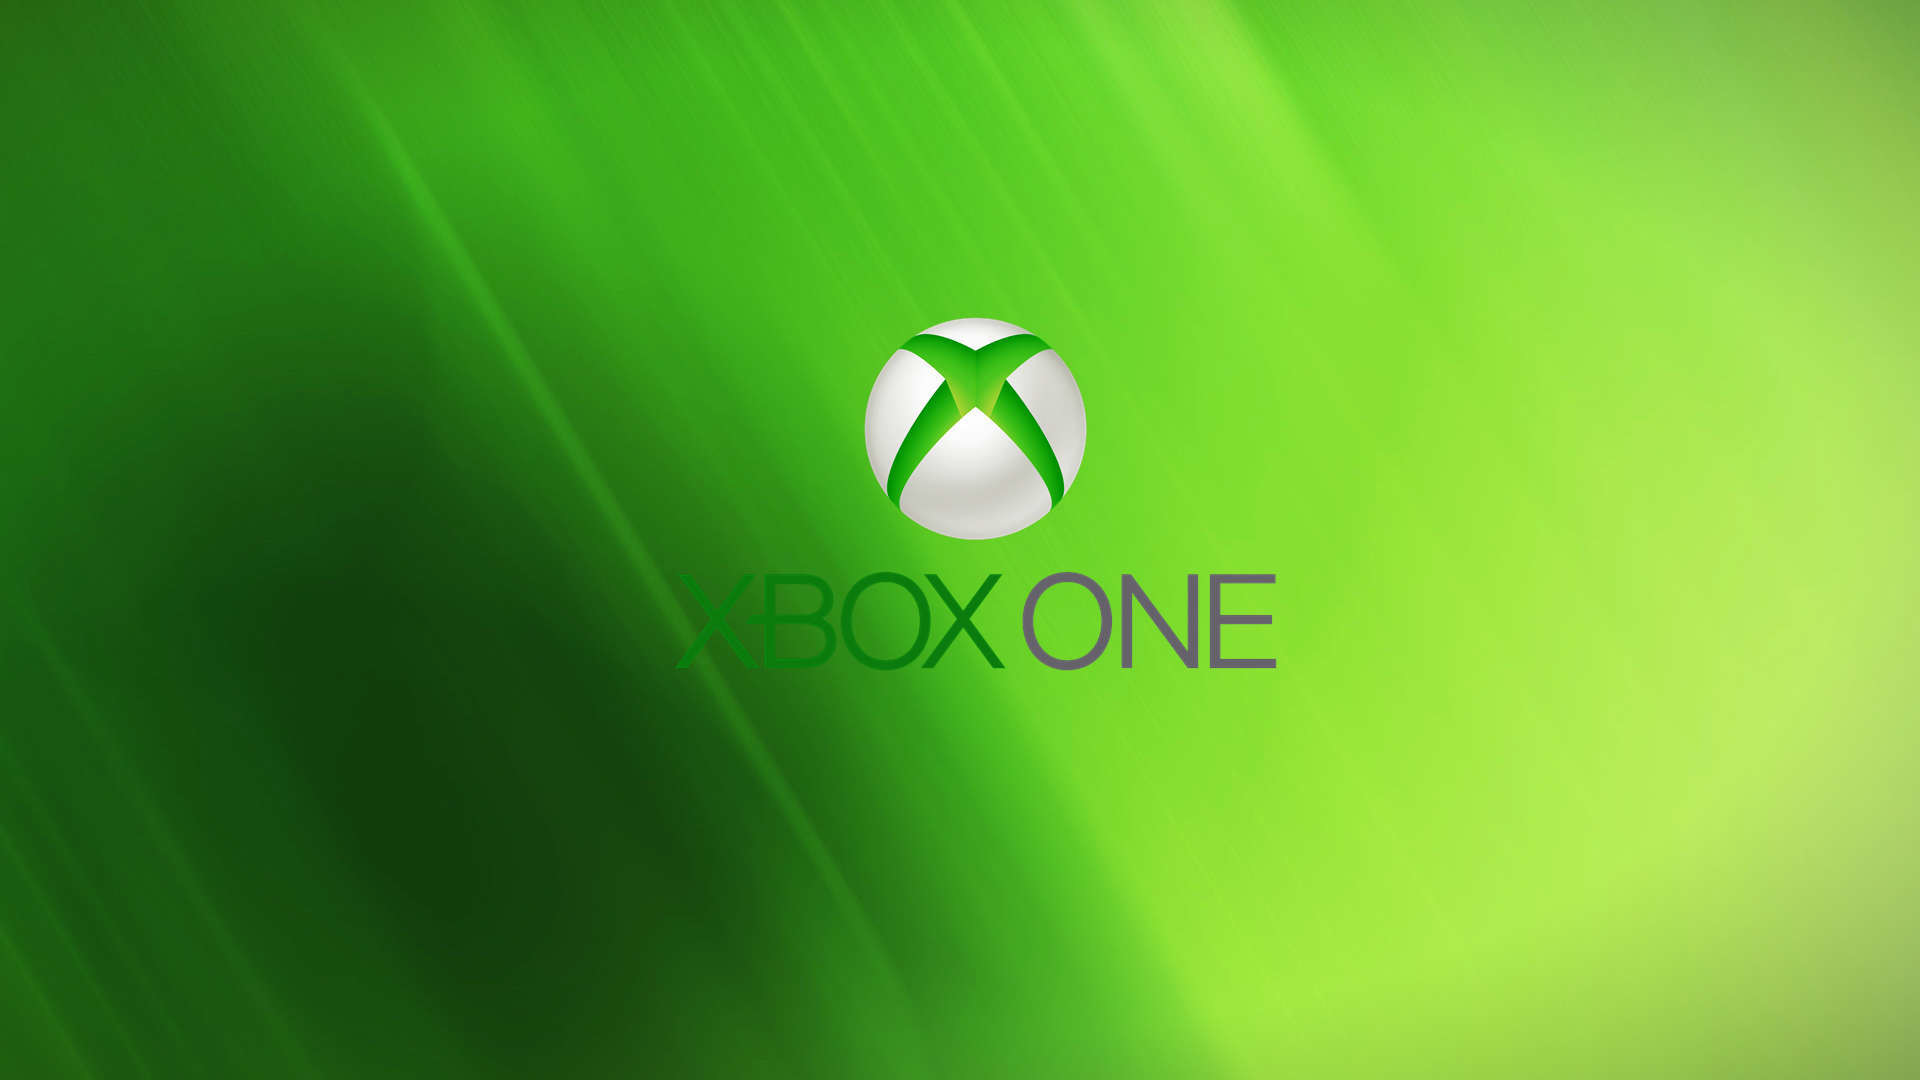 1920x1080 Download now: HD Wallpaper Xbox One 1080p. Read description info's and .